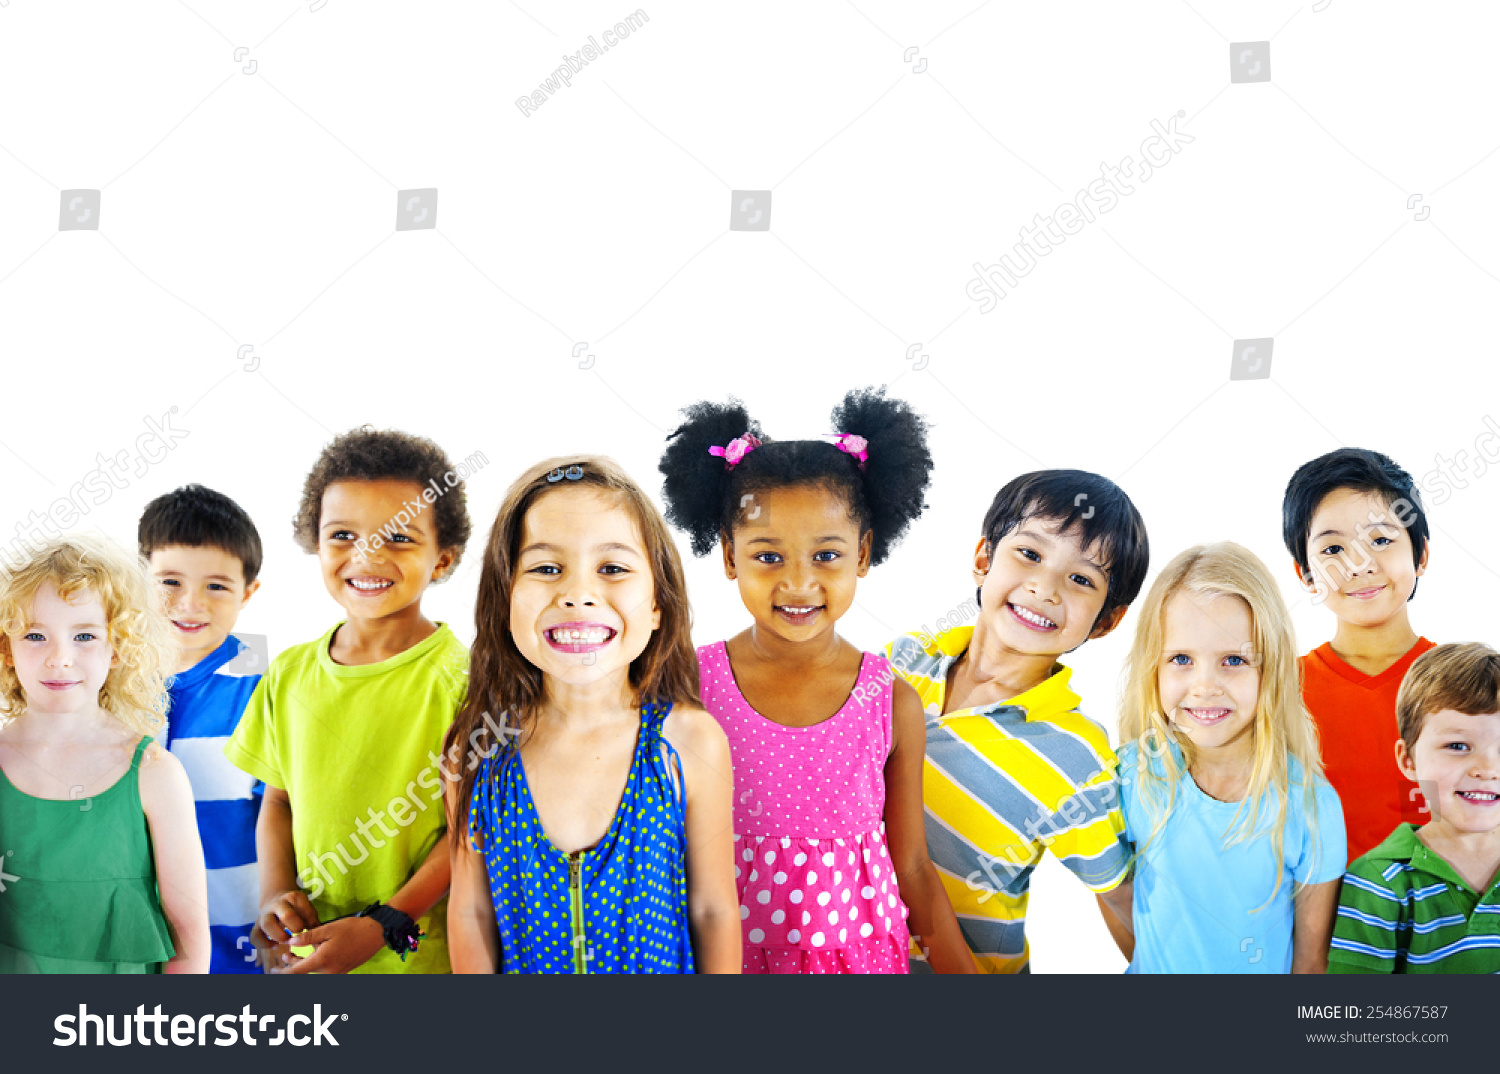 Ethnicity Diversity Group Kids Friendship Cheerful Stock ...